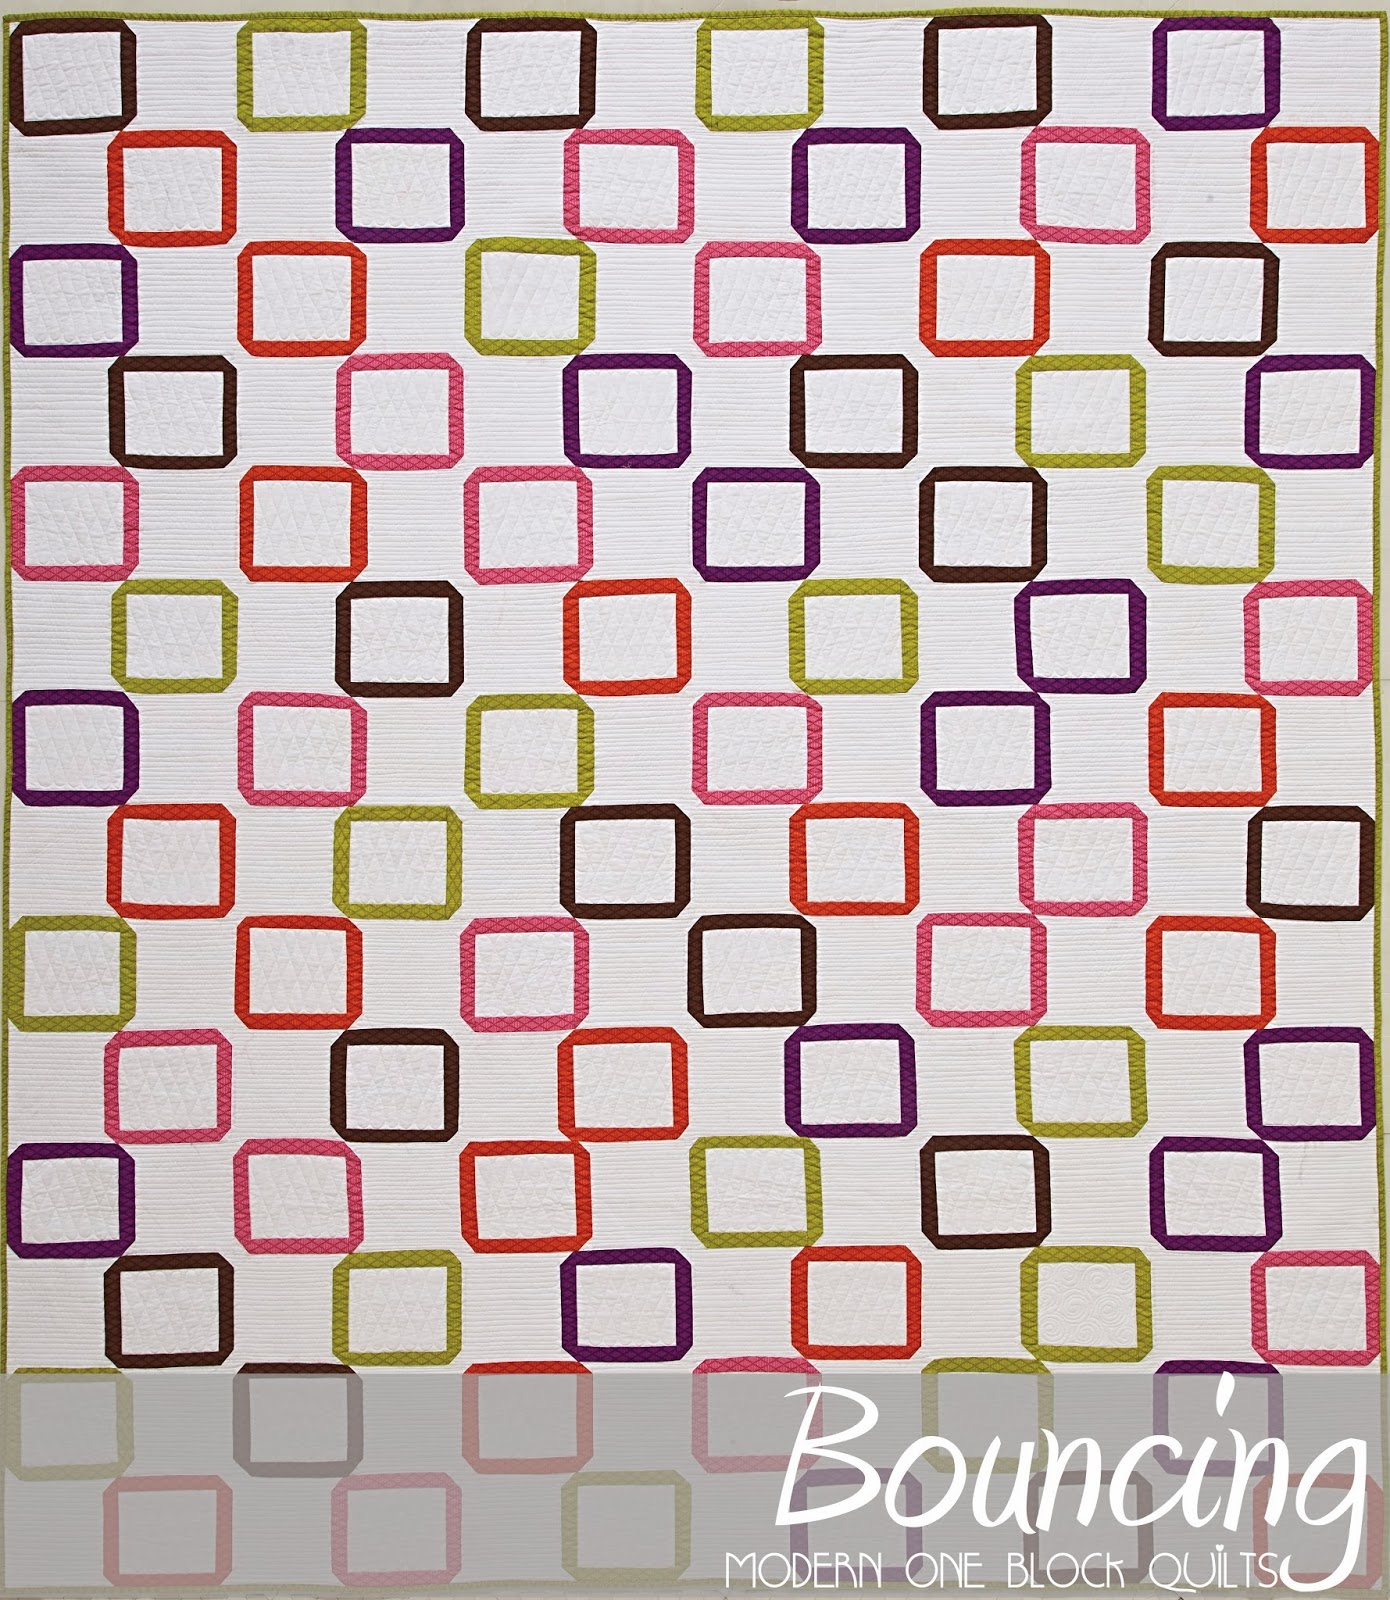 Bouncing pattern published in Modern One Block Quilts